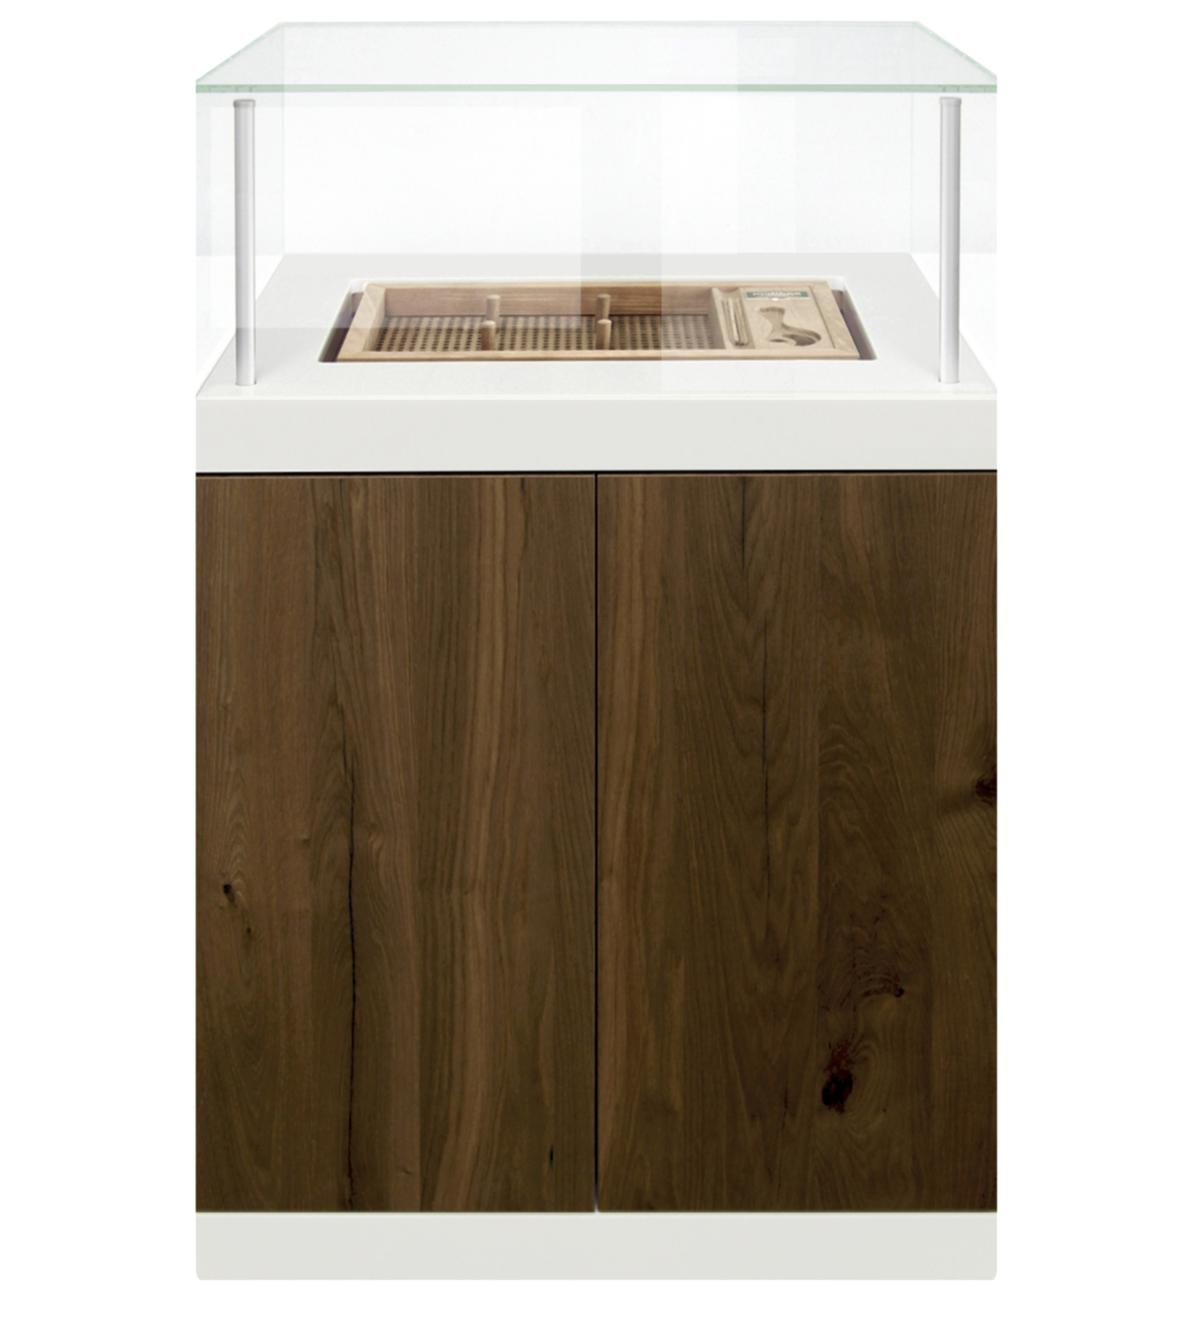 gerber-humidor-ascension-eiche-corian